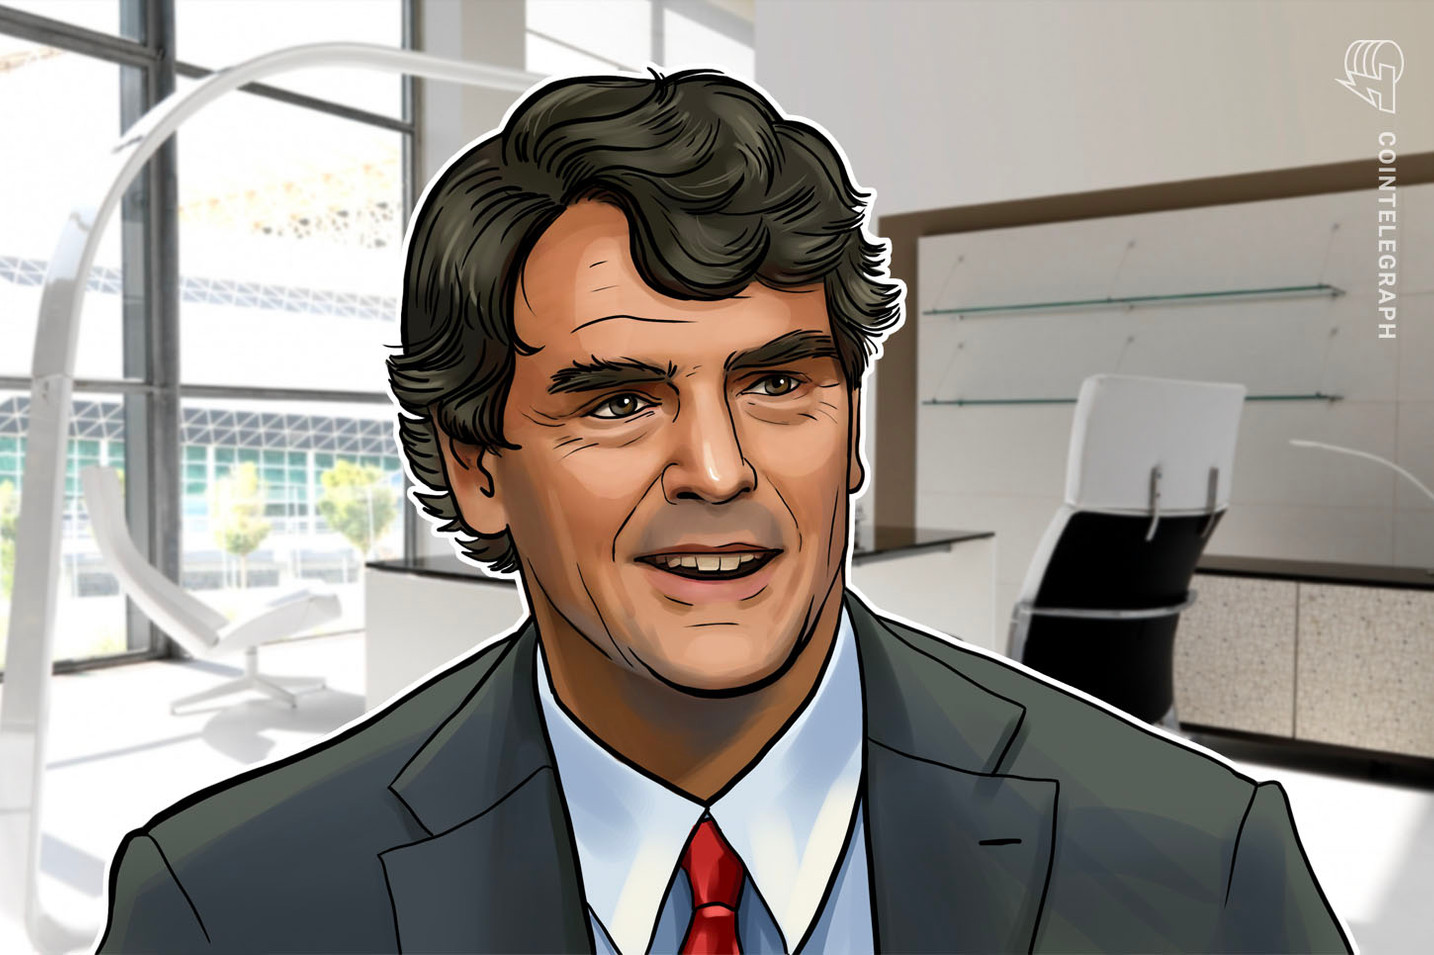 Tim Draper Calls for Ross Ulbricht's Release: 'We Need Entrepreneurs Like That Guy!'